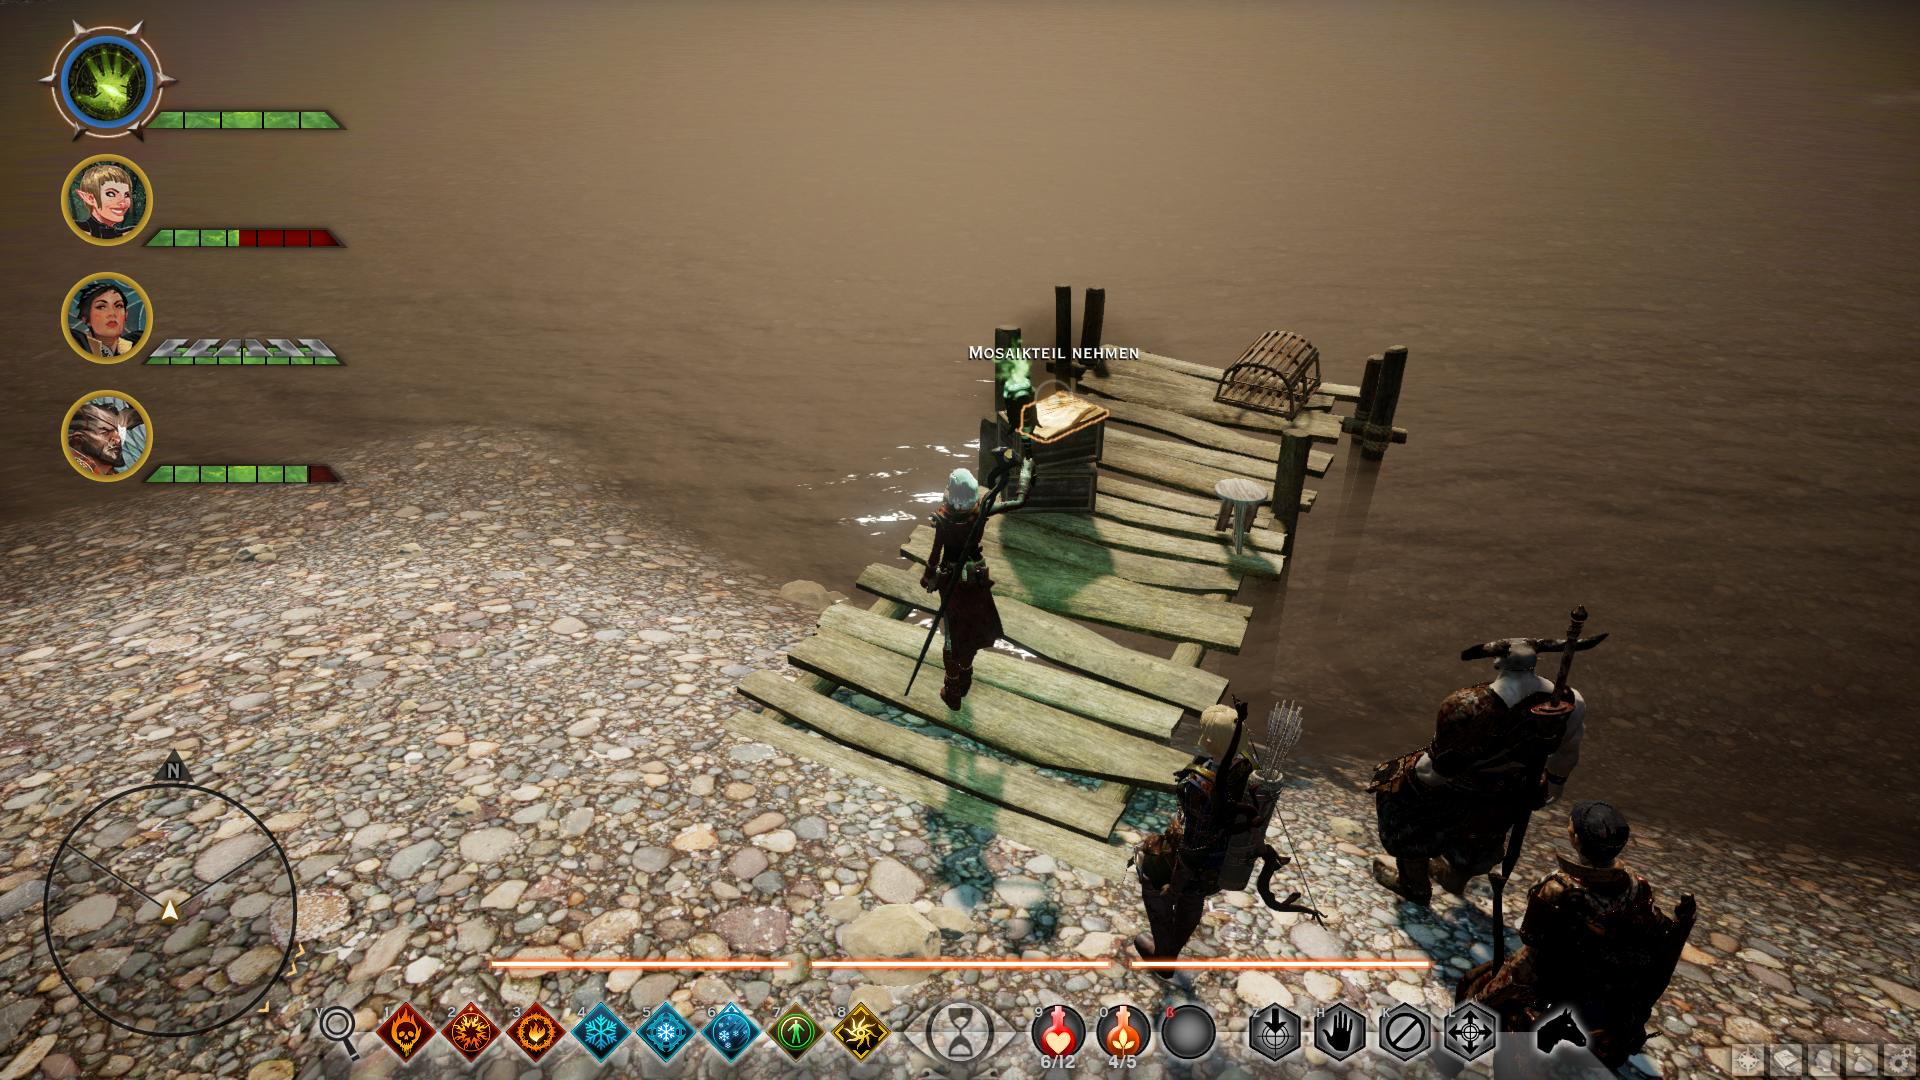 Dragon Age Inquisition Mosaic Pieces Locations Guide ...